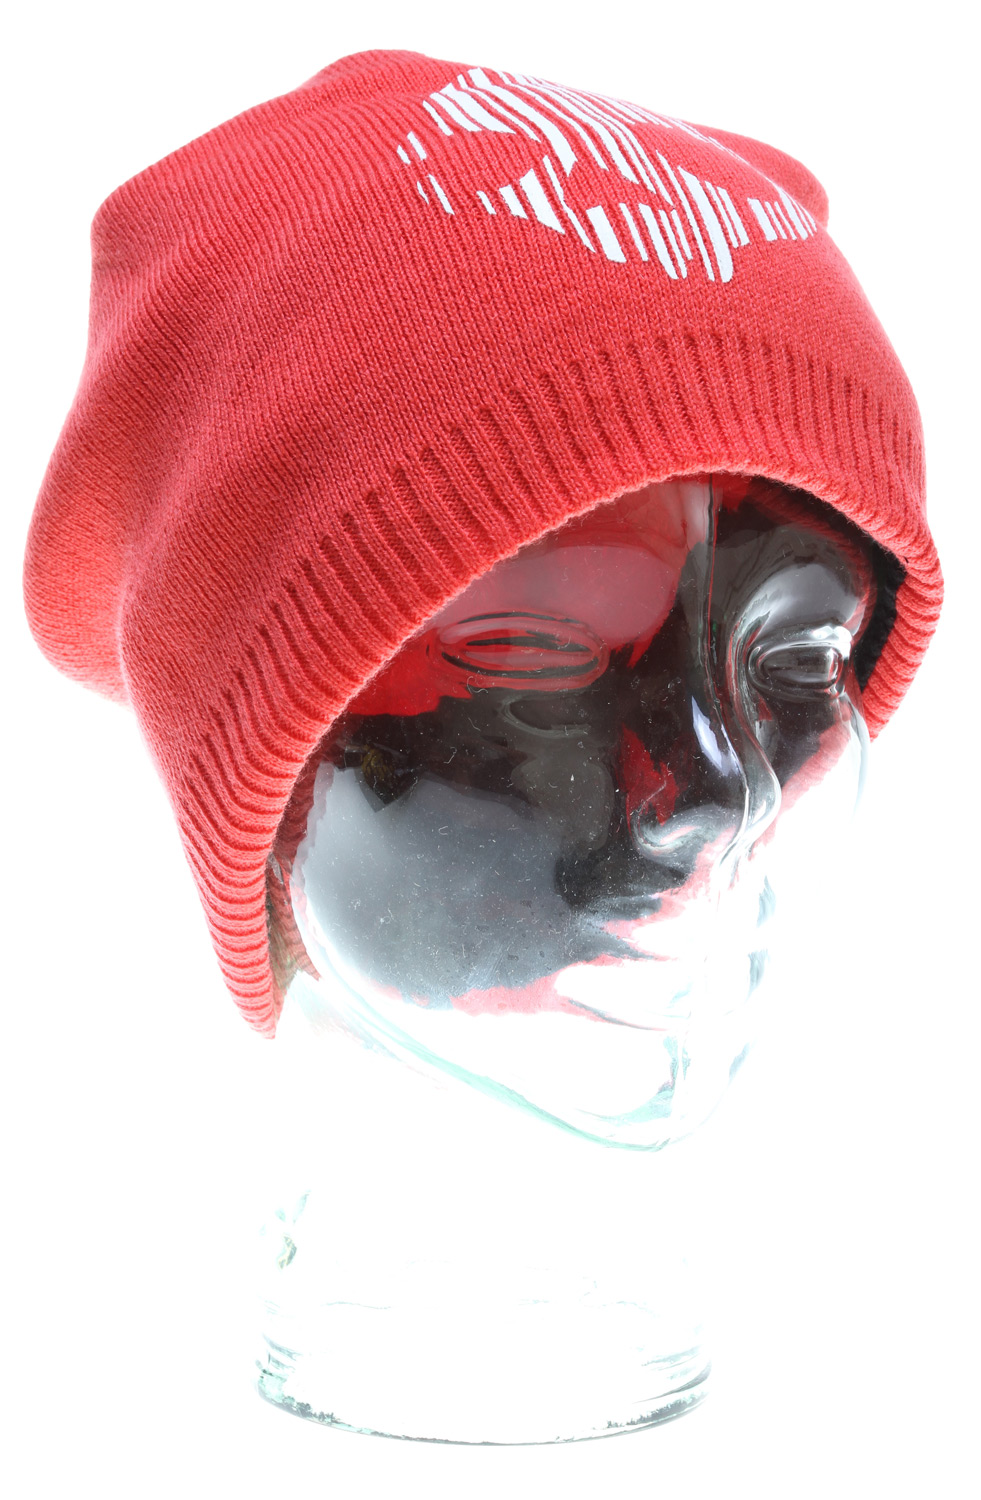 The Skullcandy Vesta Beanie, once you get the taste, you won't want to take it off. Includes Home Brew KitKey Features of the Skullcandy Vesta Audio Beanie: Side woven logo label Audio-Enabled Includes Home Brew Kit FABRIC CONTENT: 100% acrylic - $14.95